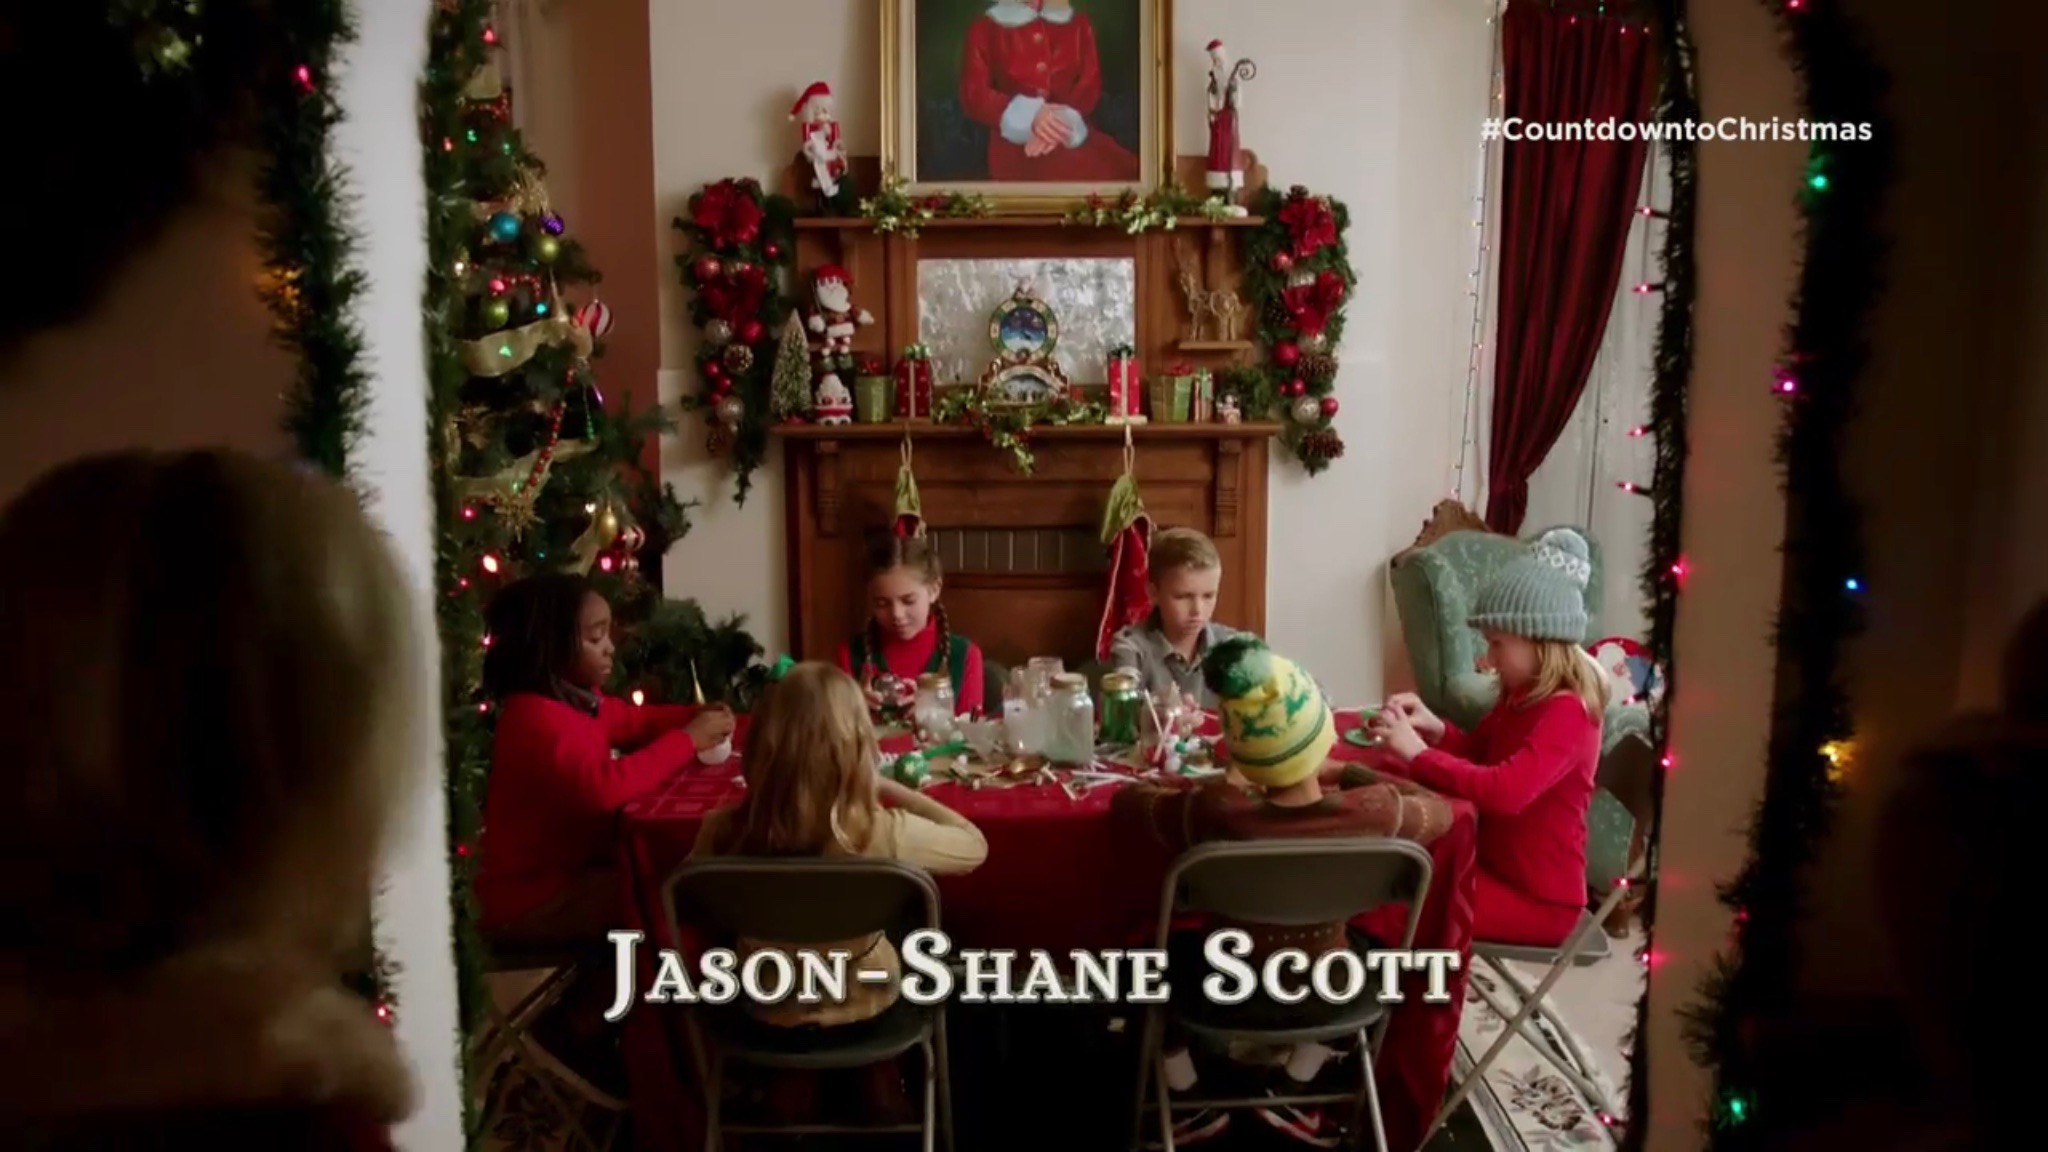 inside there are six kids sitting at a table when a woman played by maureen mccormick of brady bunch fame walks in with a picture of herself looking down on - When Is Christmas In 2015